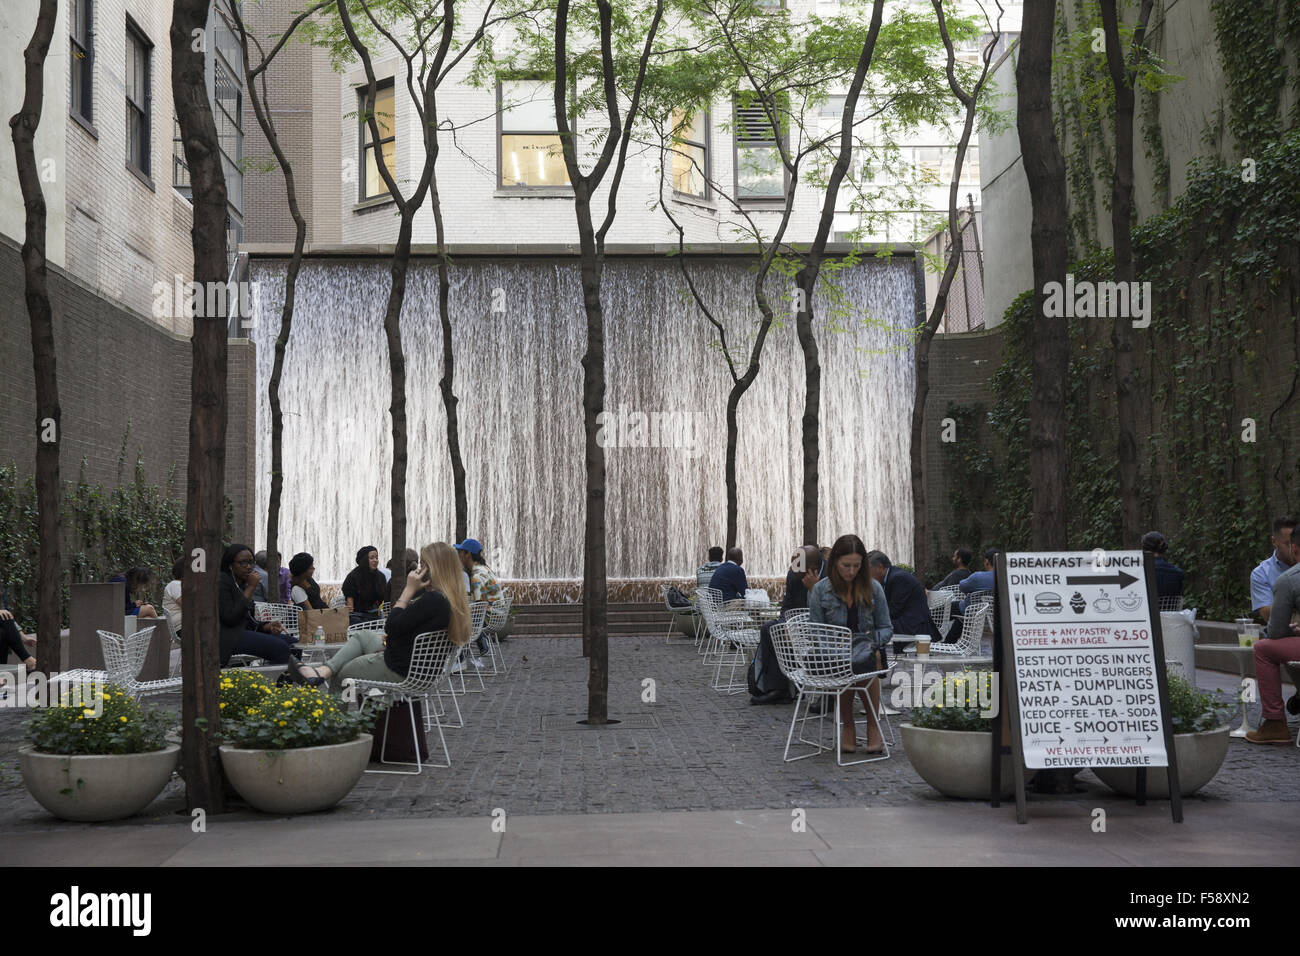 Paley Park 3 East 53rd Street. NYC - Stock Image